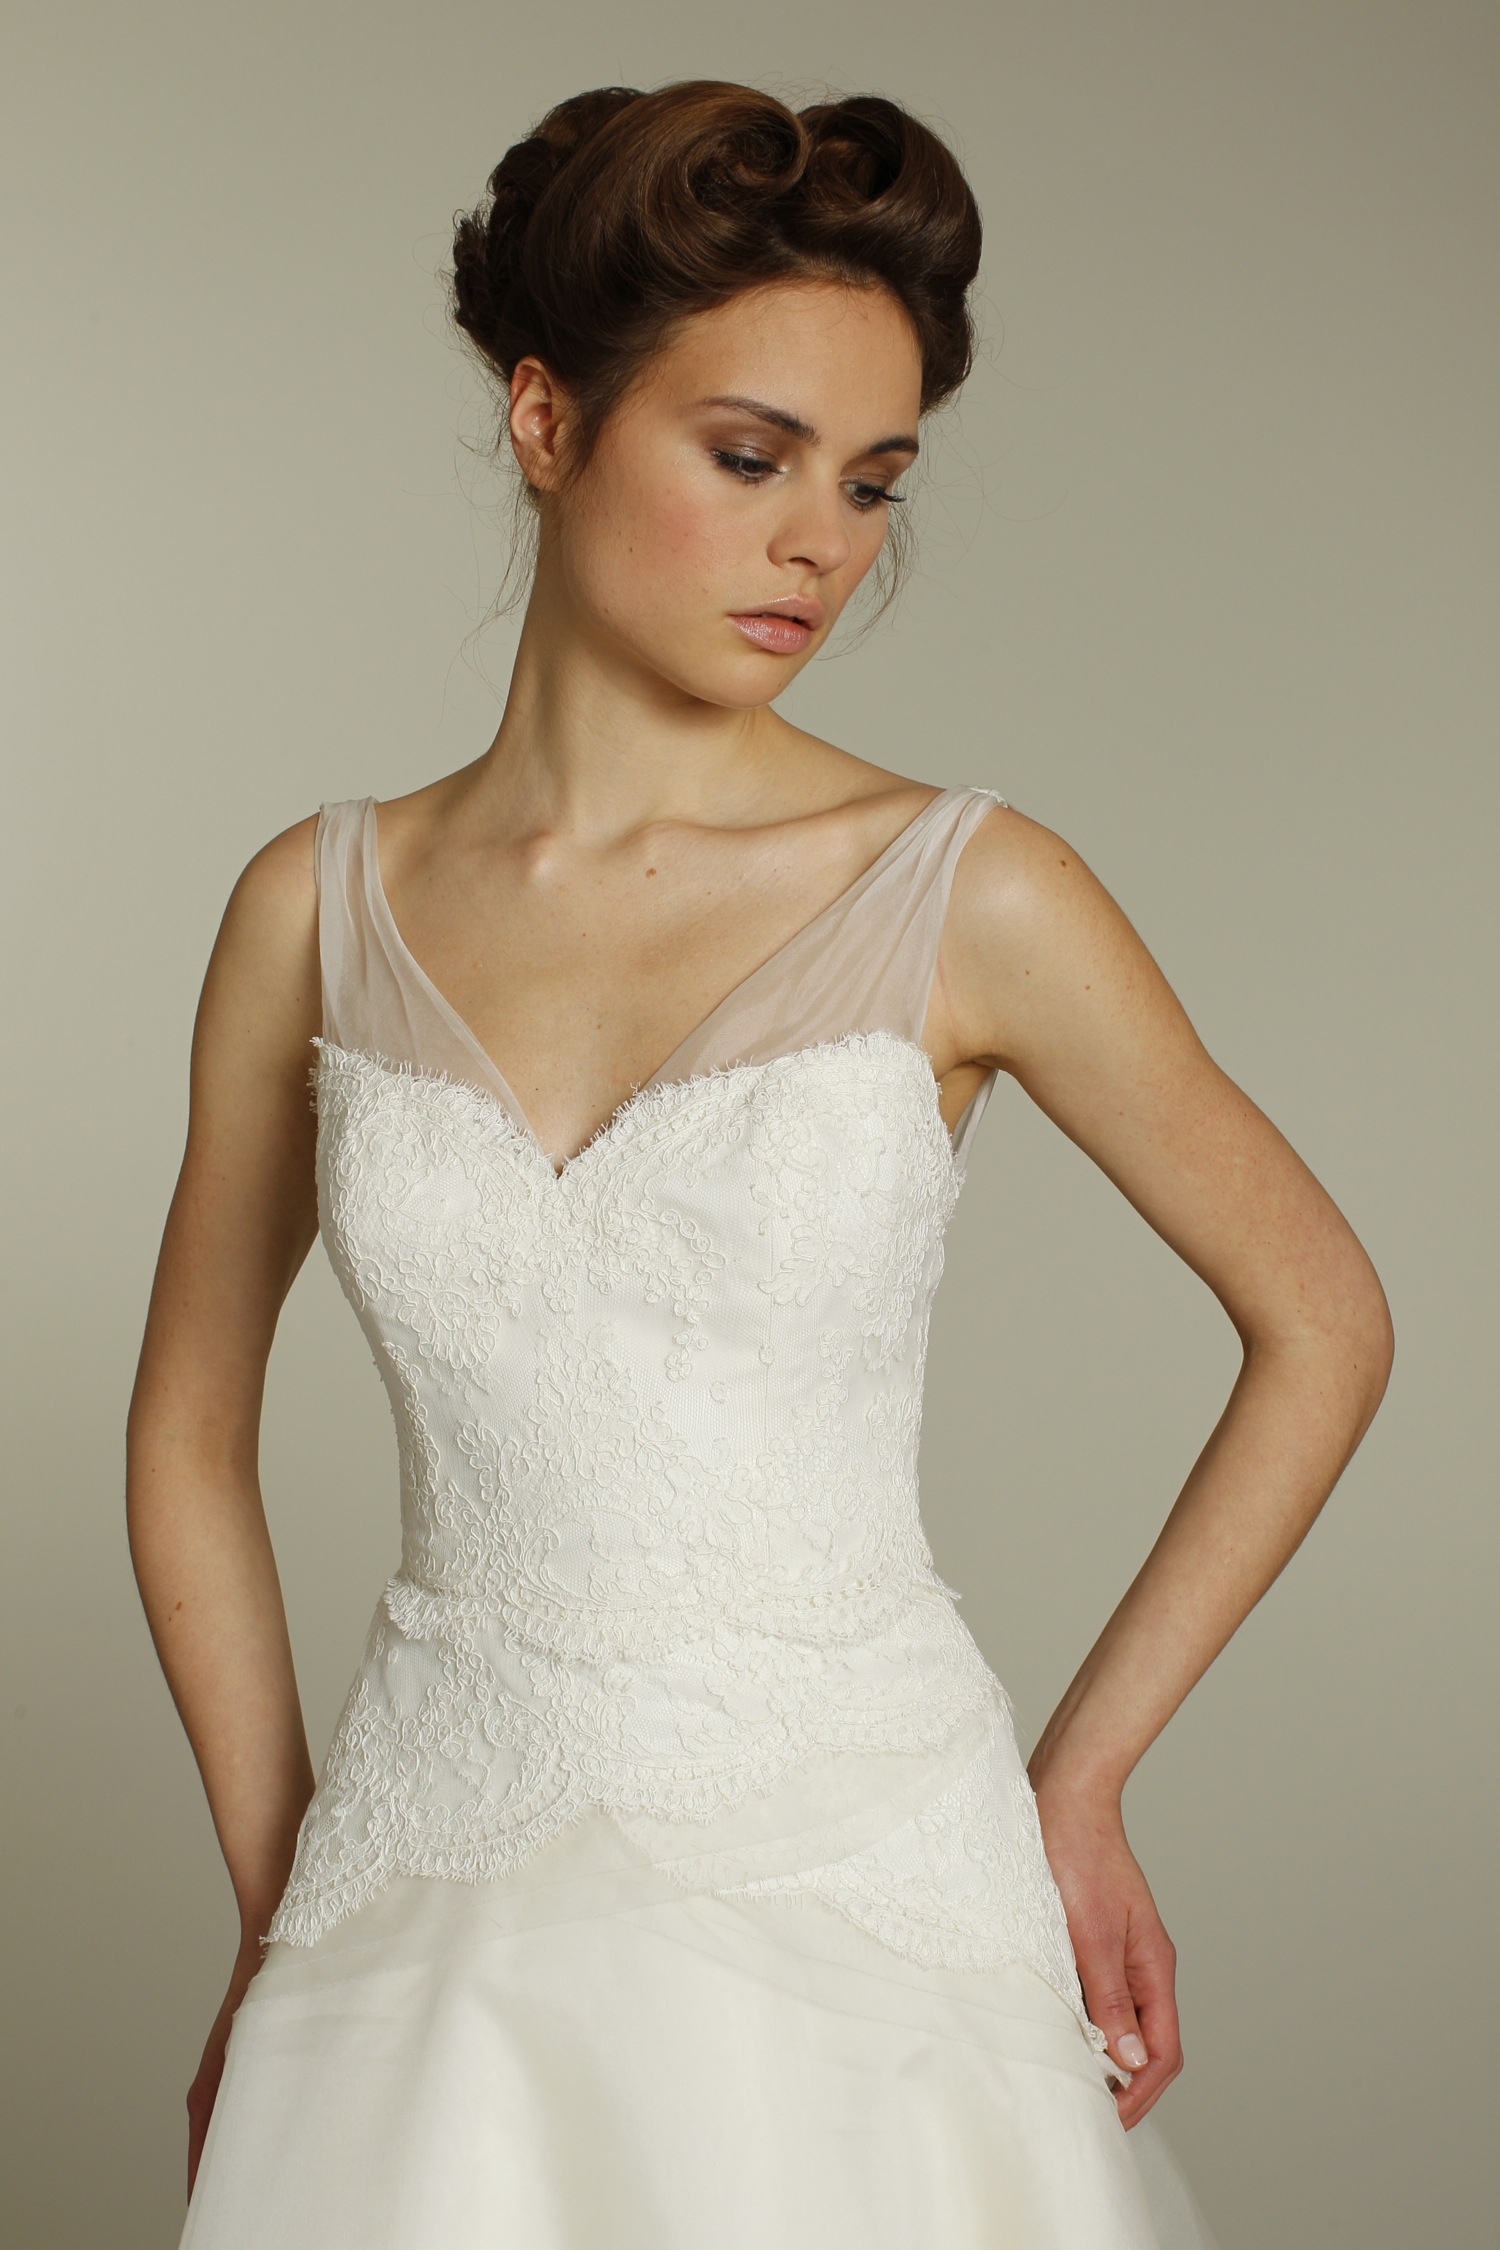 9152-alvina-valenta-wedding-dress-2011-bridal-gowns-a-line-illusion-straps-detail.original